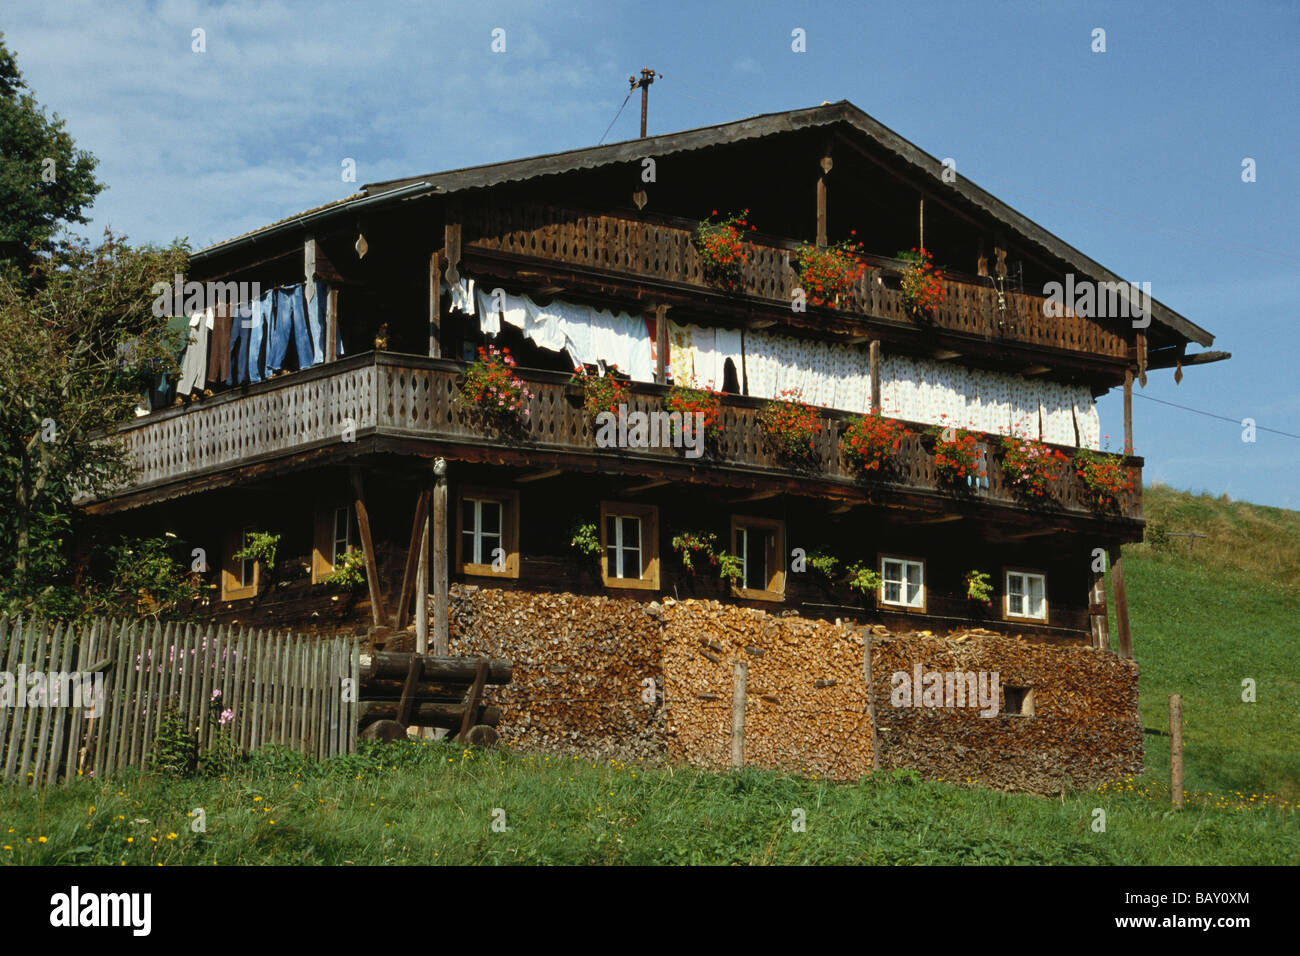 Laundry Drying On A Balcony Of An Old Log Cabin Style Farm